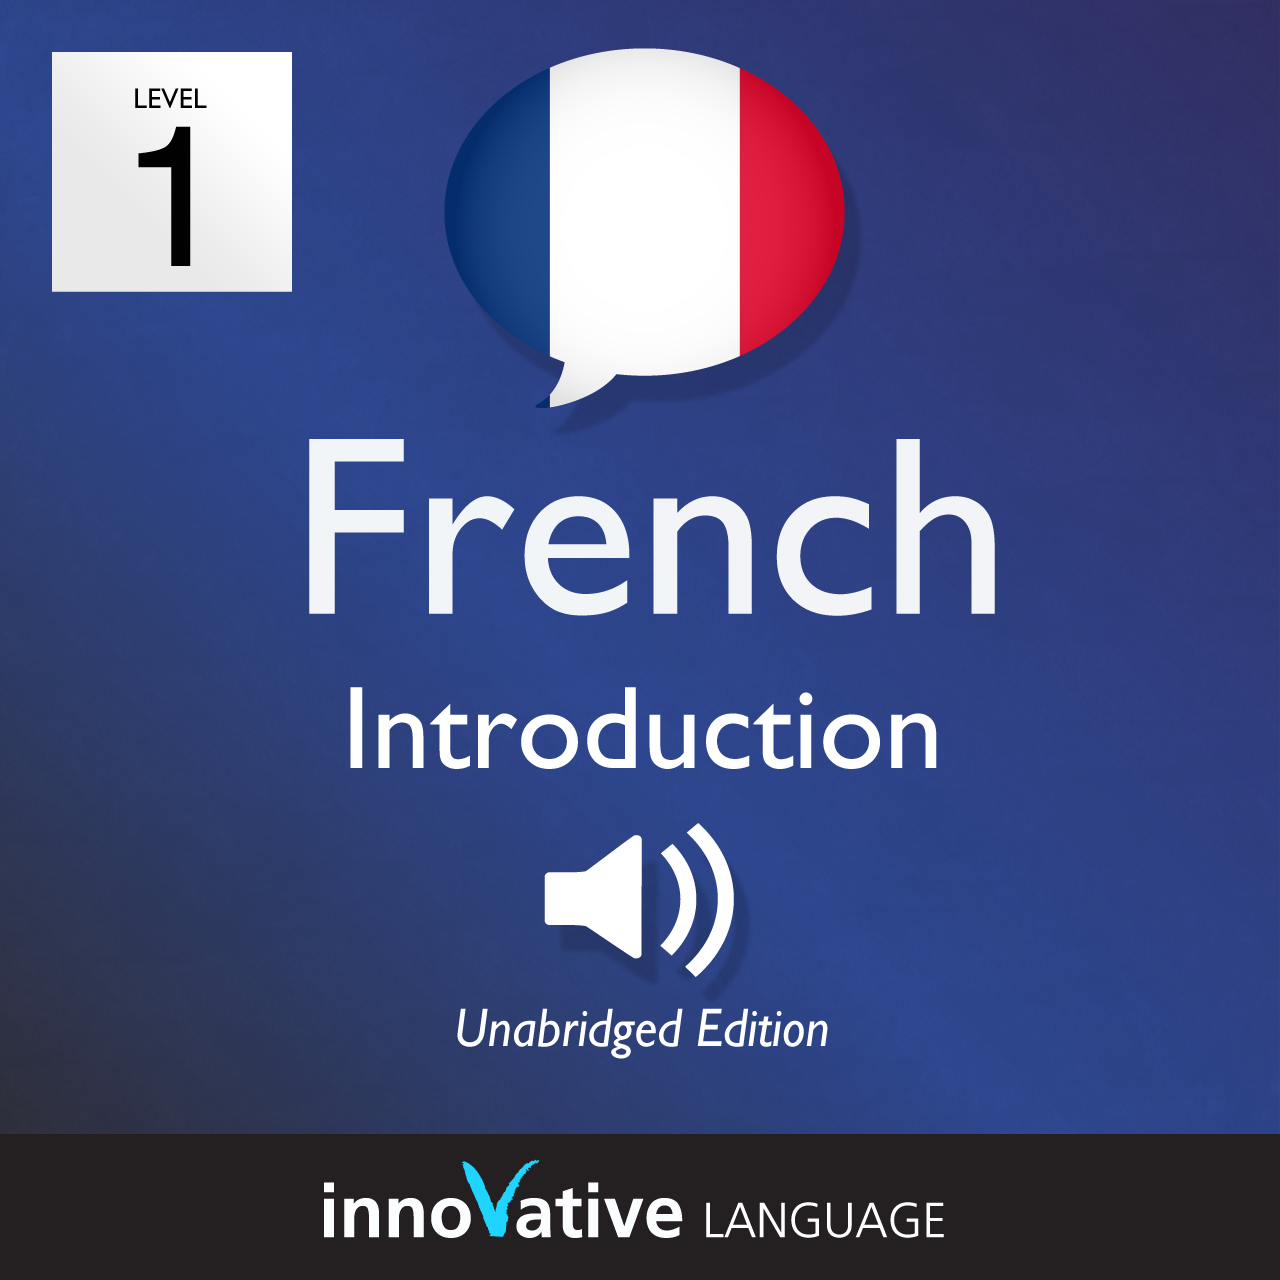 [Audiobook] Learn French - Level 1: Introduction to French, Volume 1